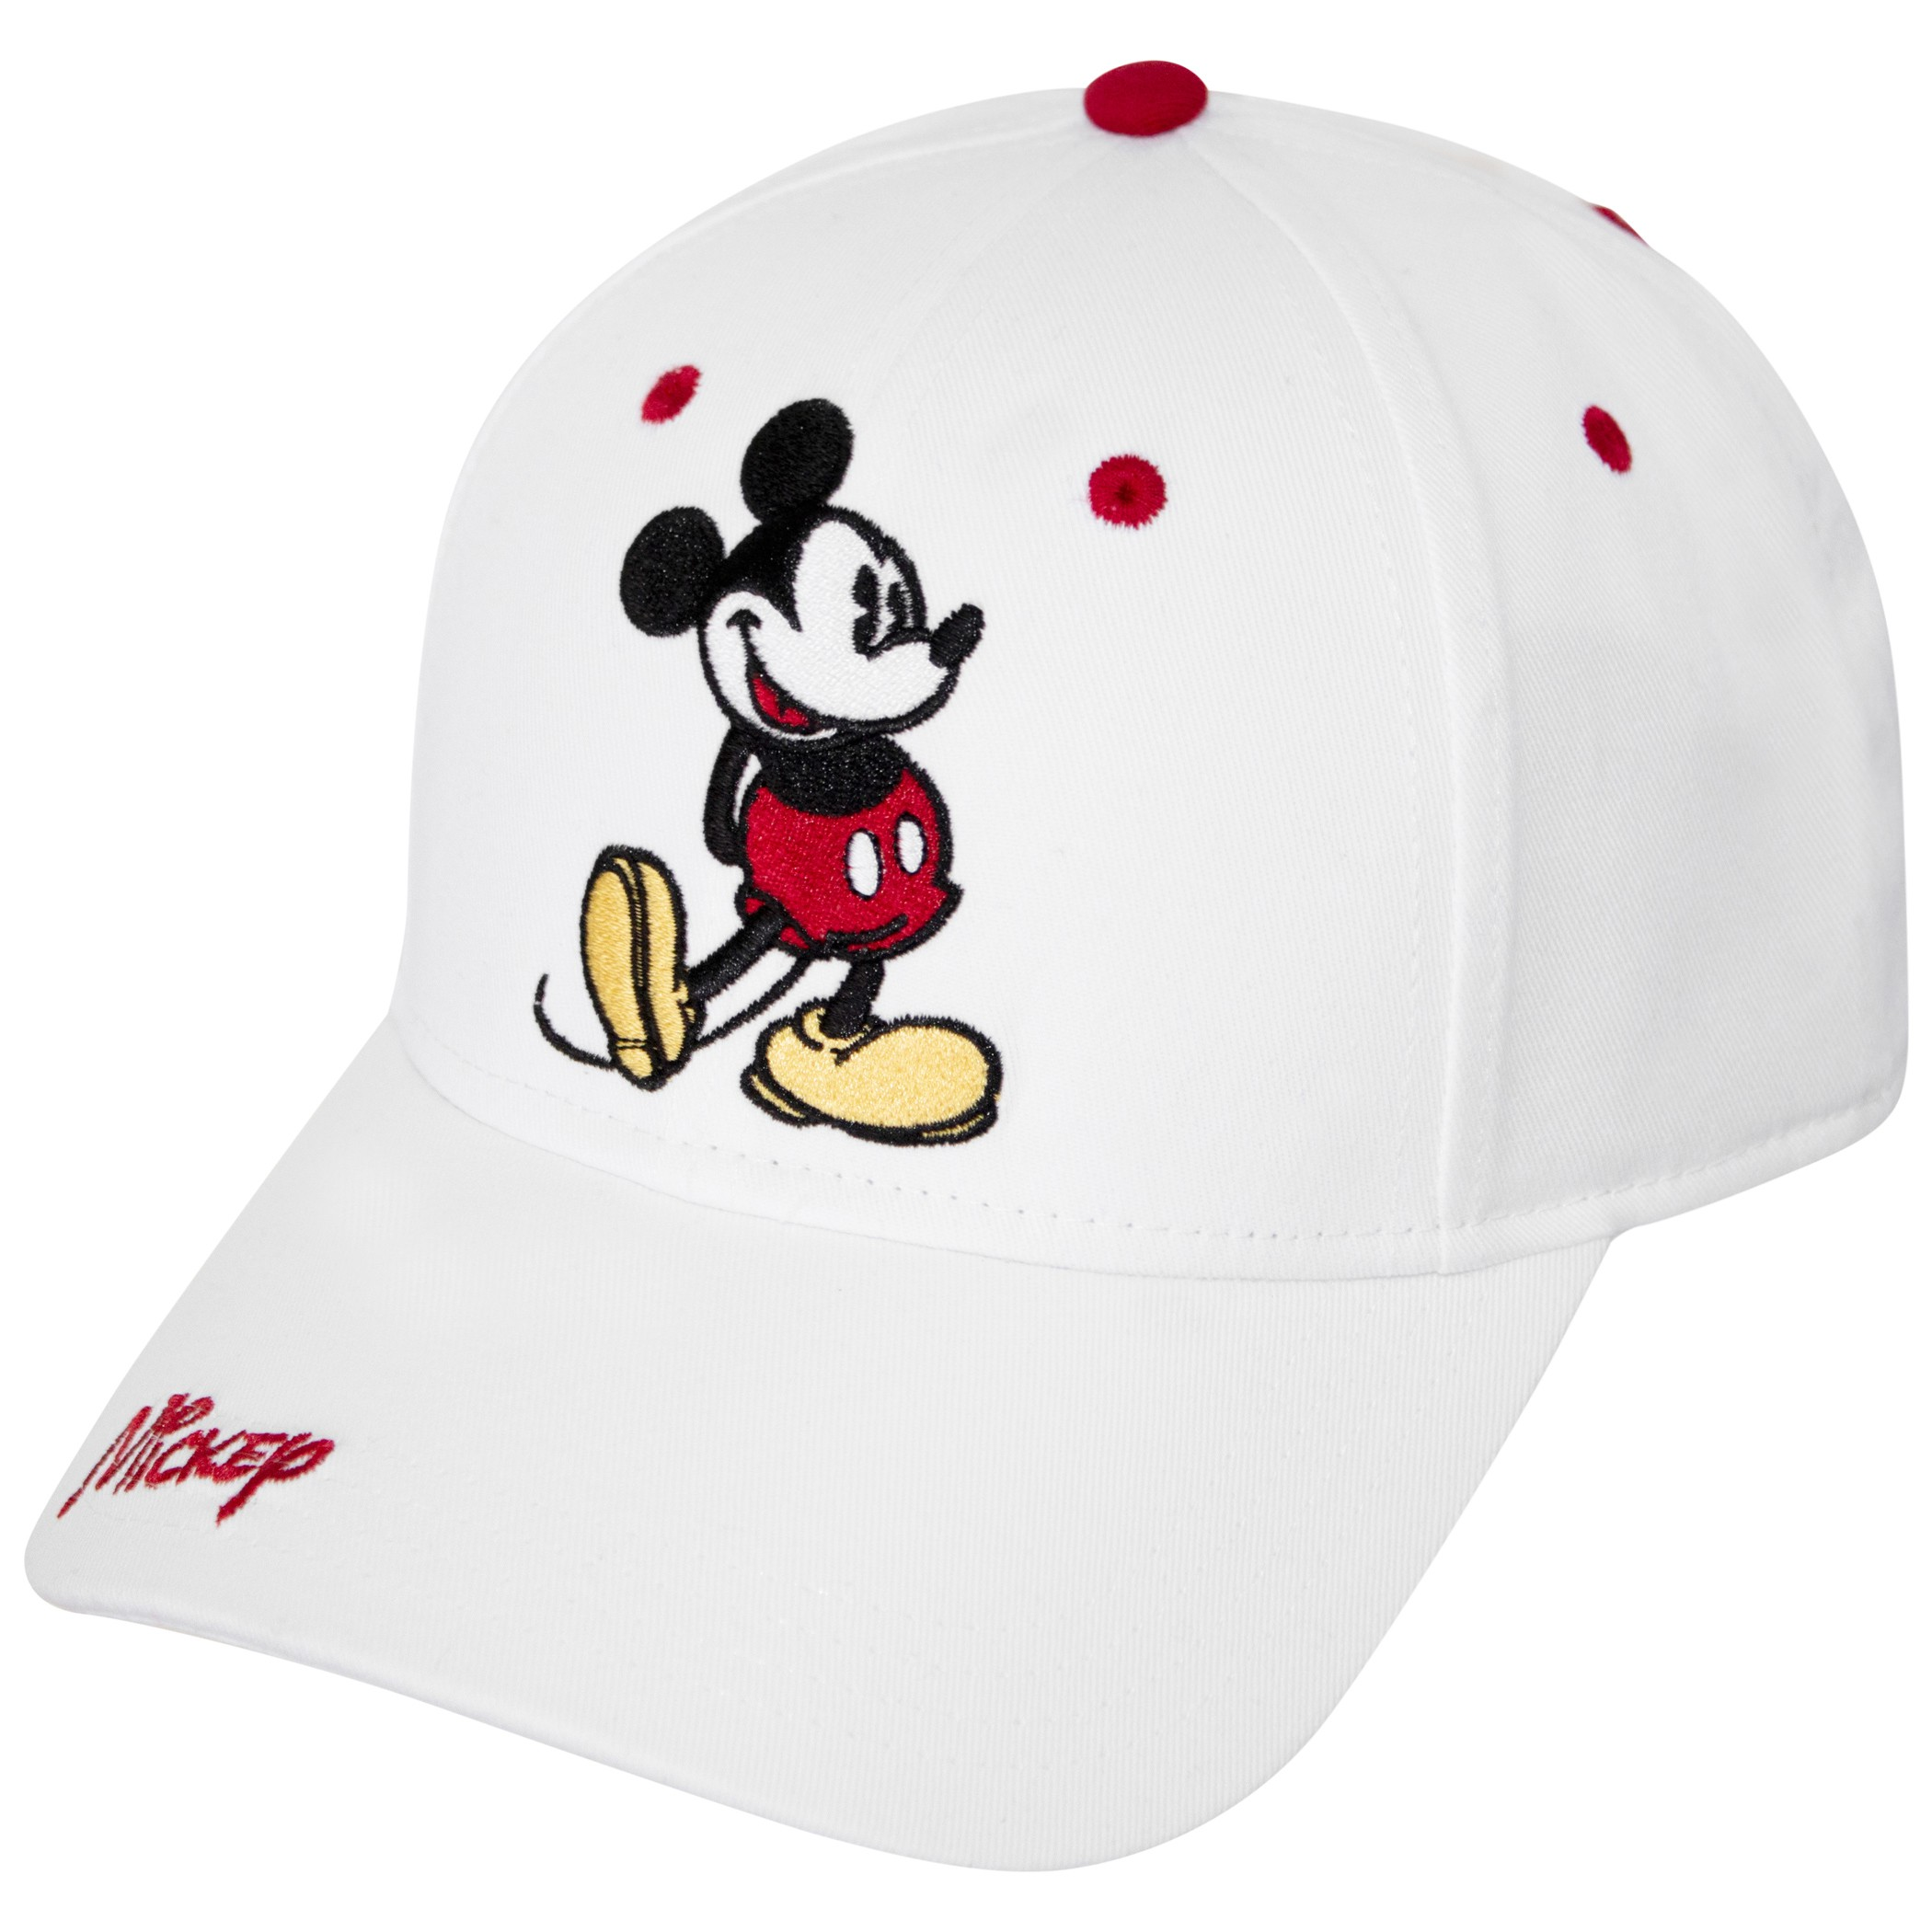 Mickey Mouse Pose White Hat